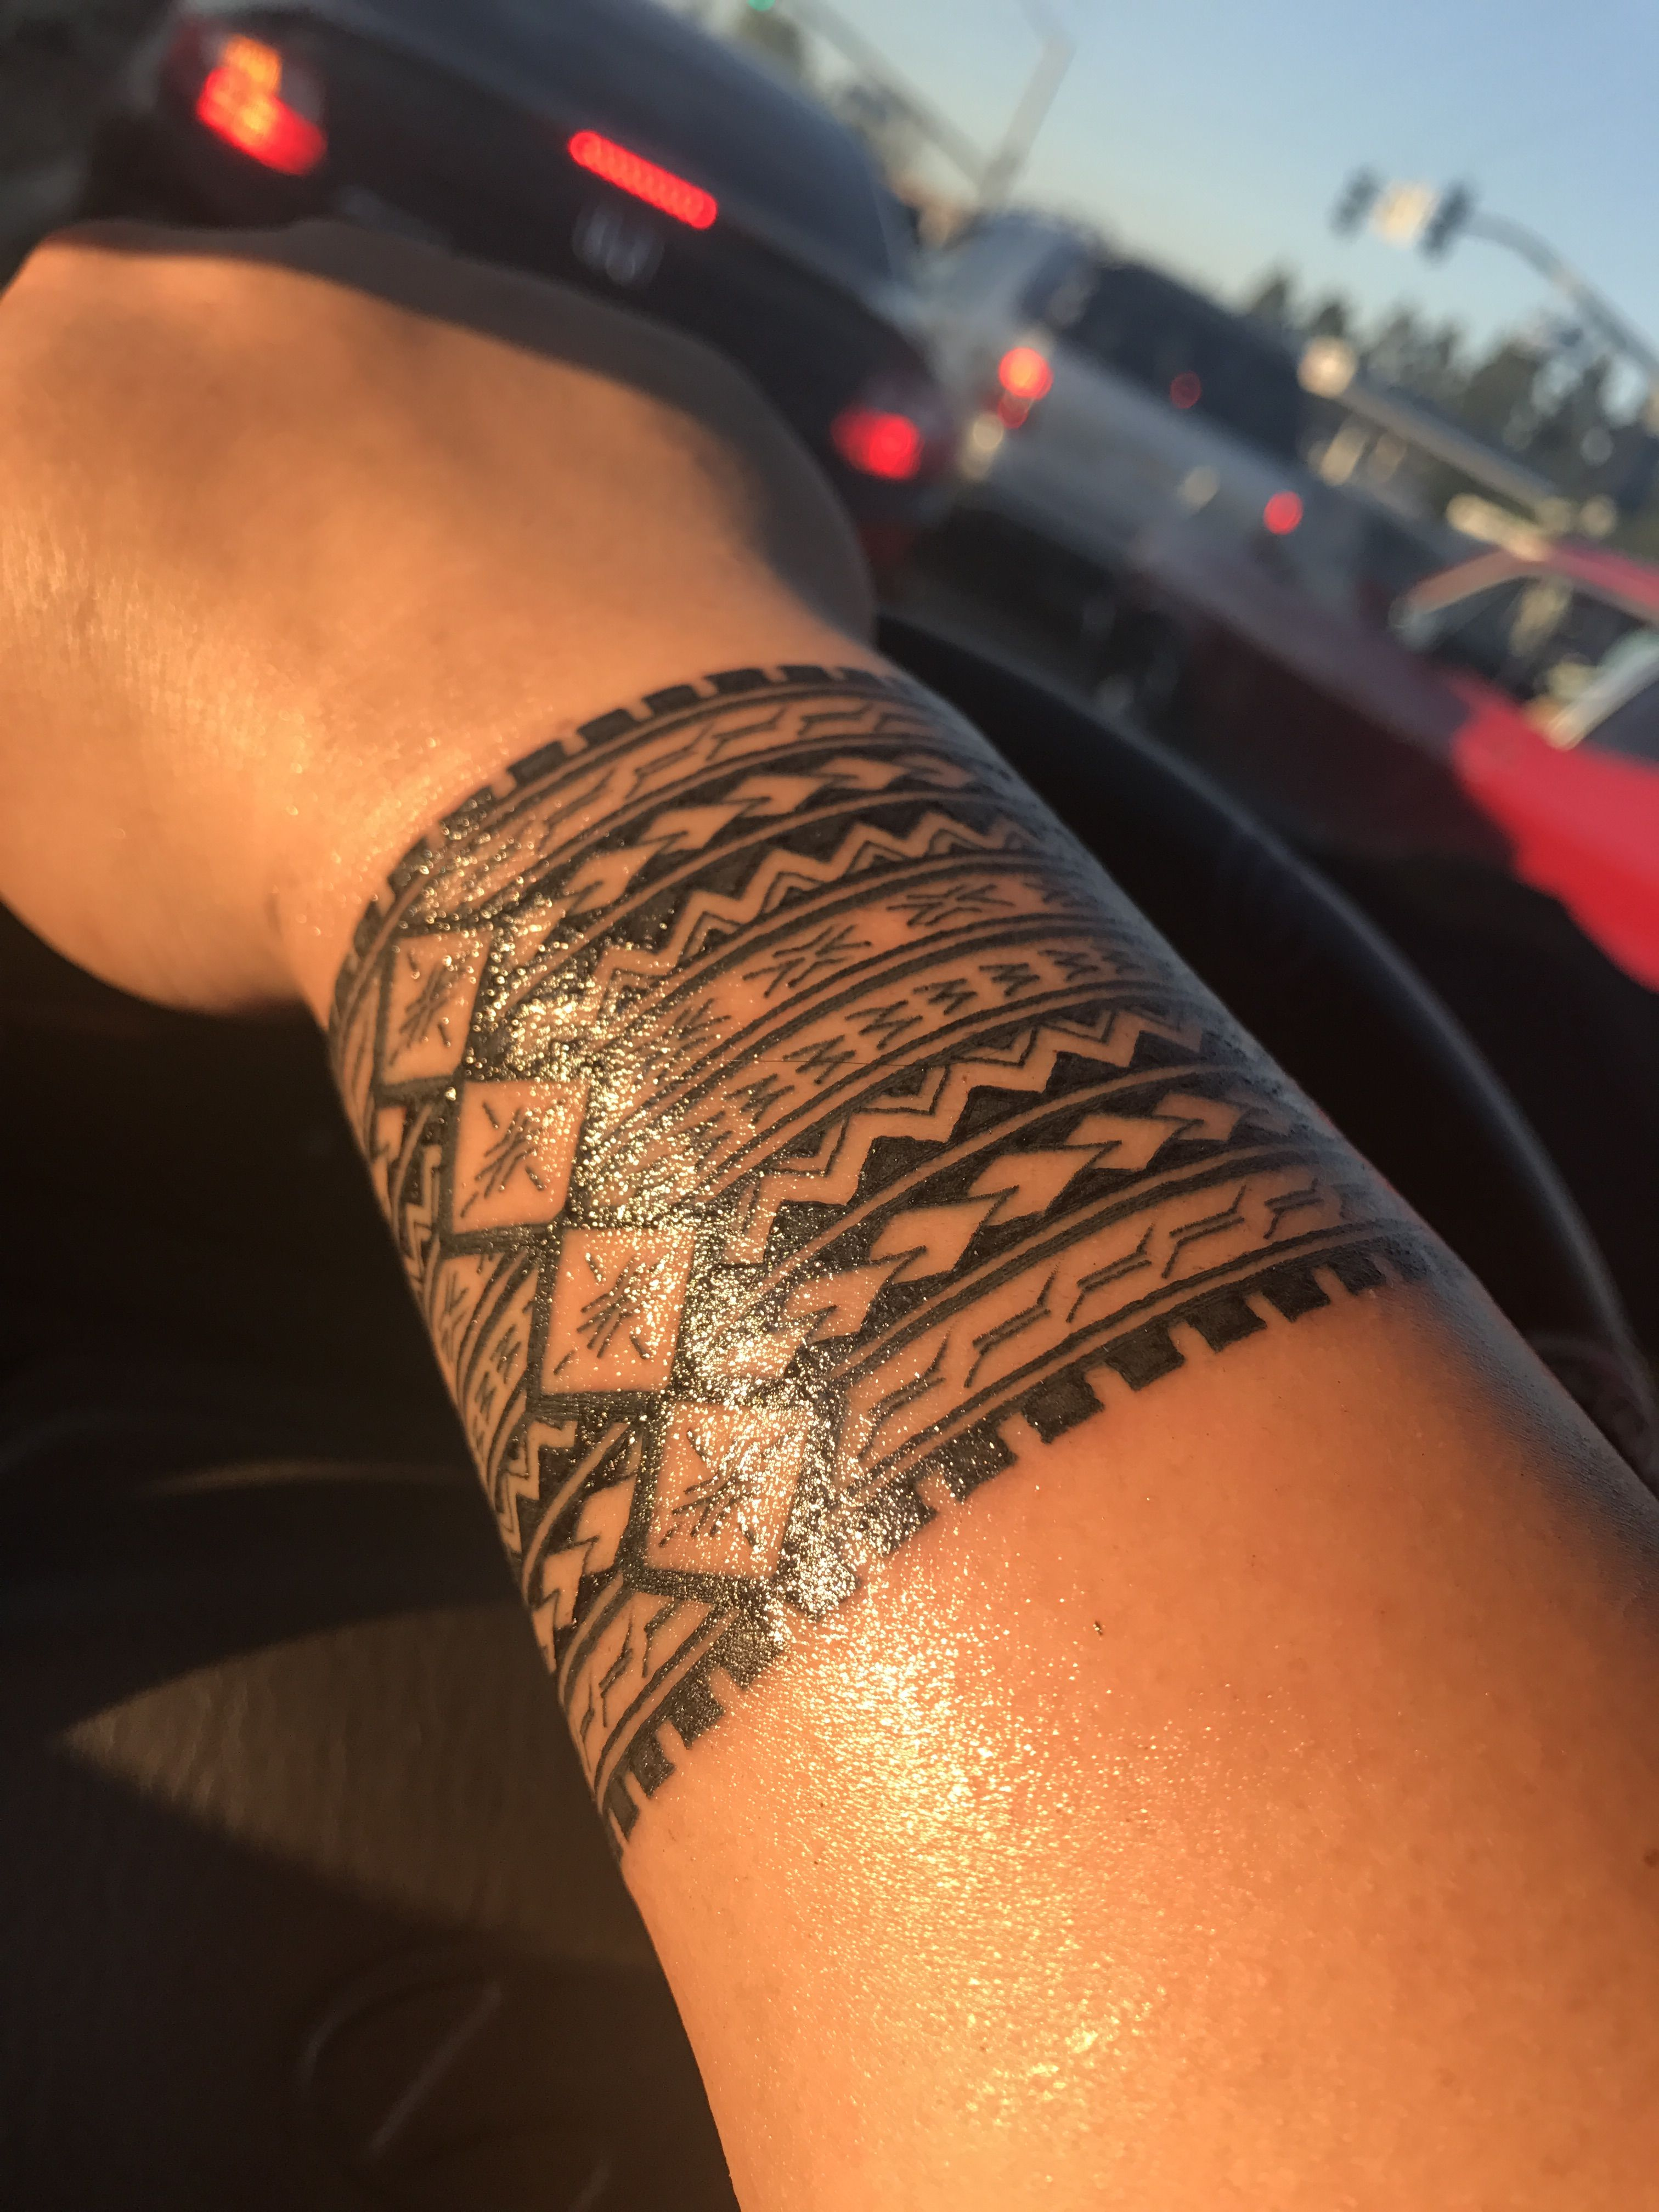 Samoan Wrist Tattoo : samoan, wrist, tattoo, Samoan, Taulima, Tribal, Tattoos, Women,, Hawaiian, Tattoos,